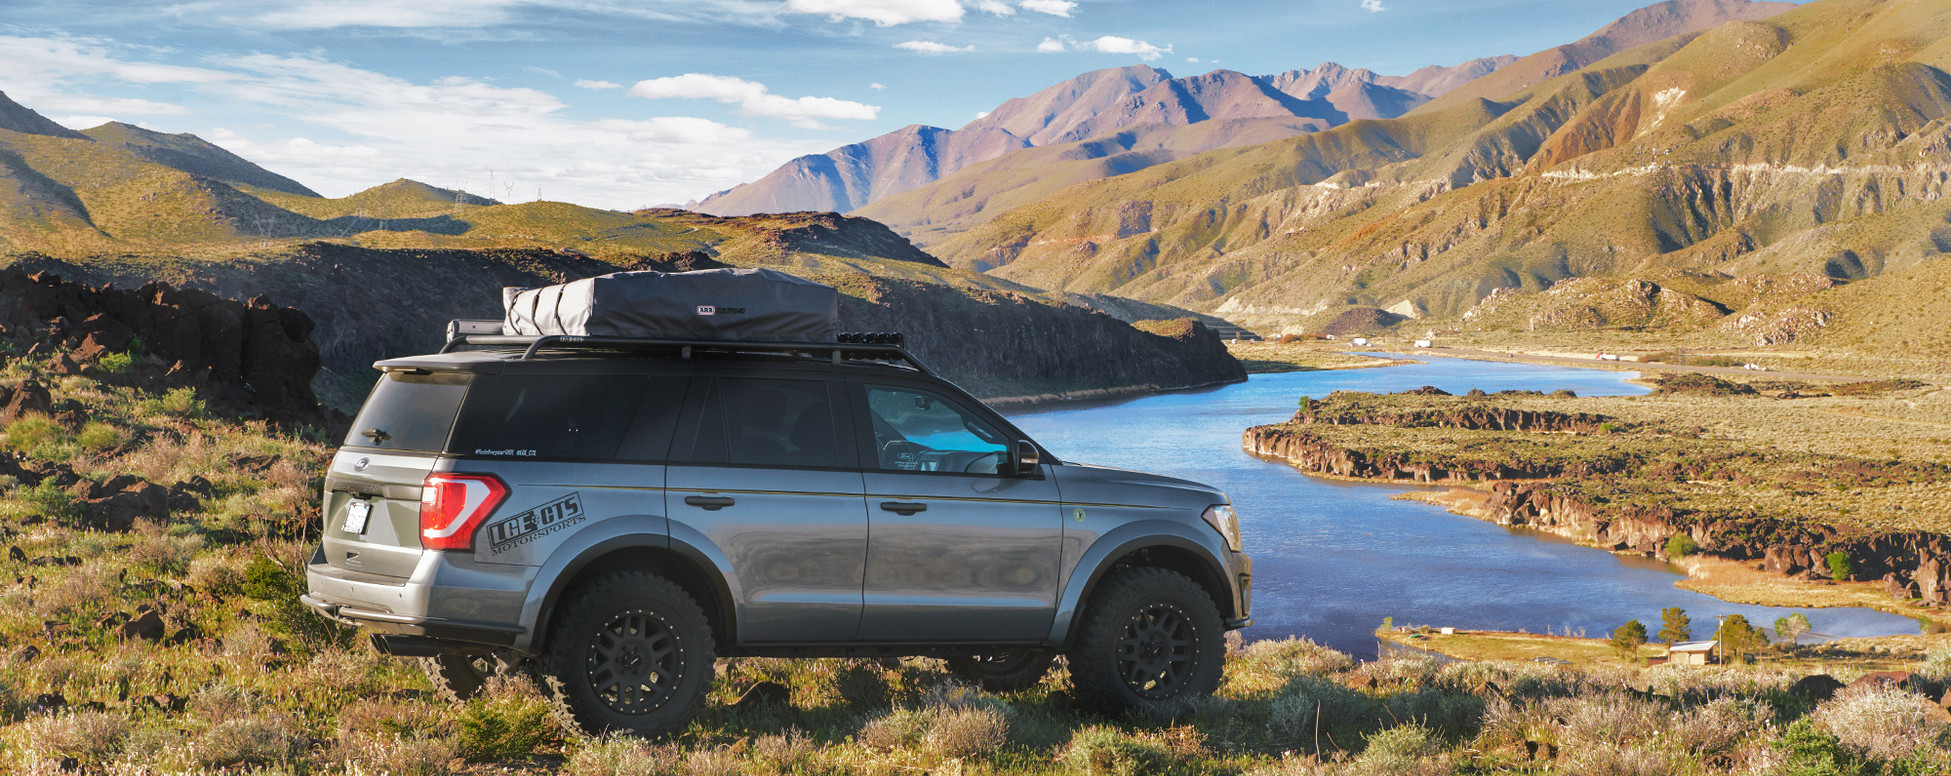 Ford Expedition Lake view photo.jpg